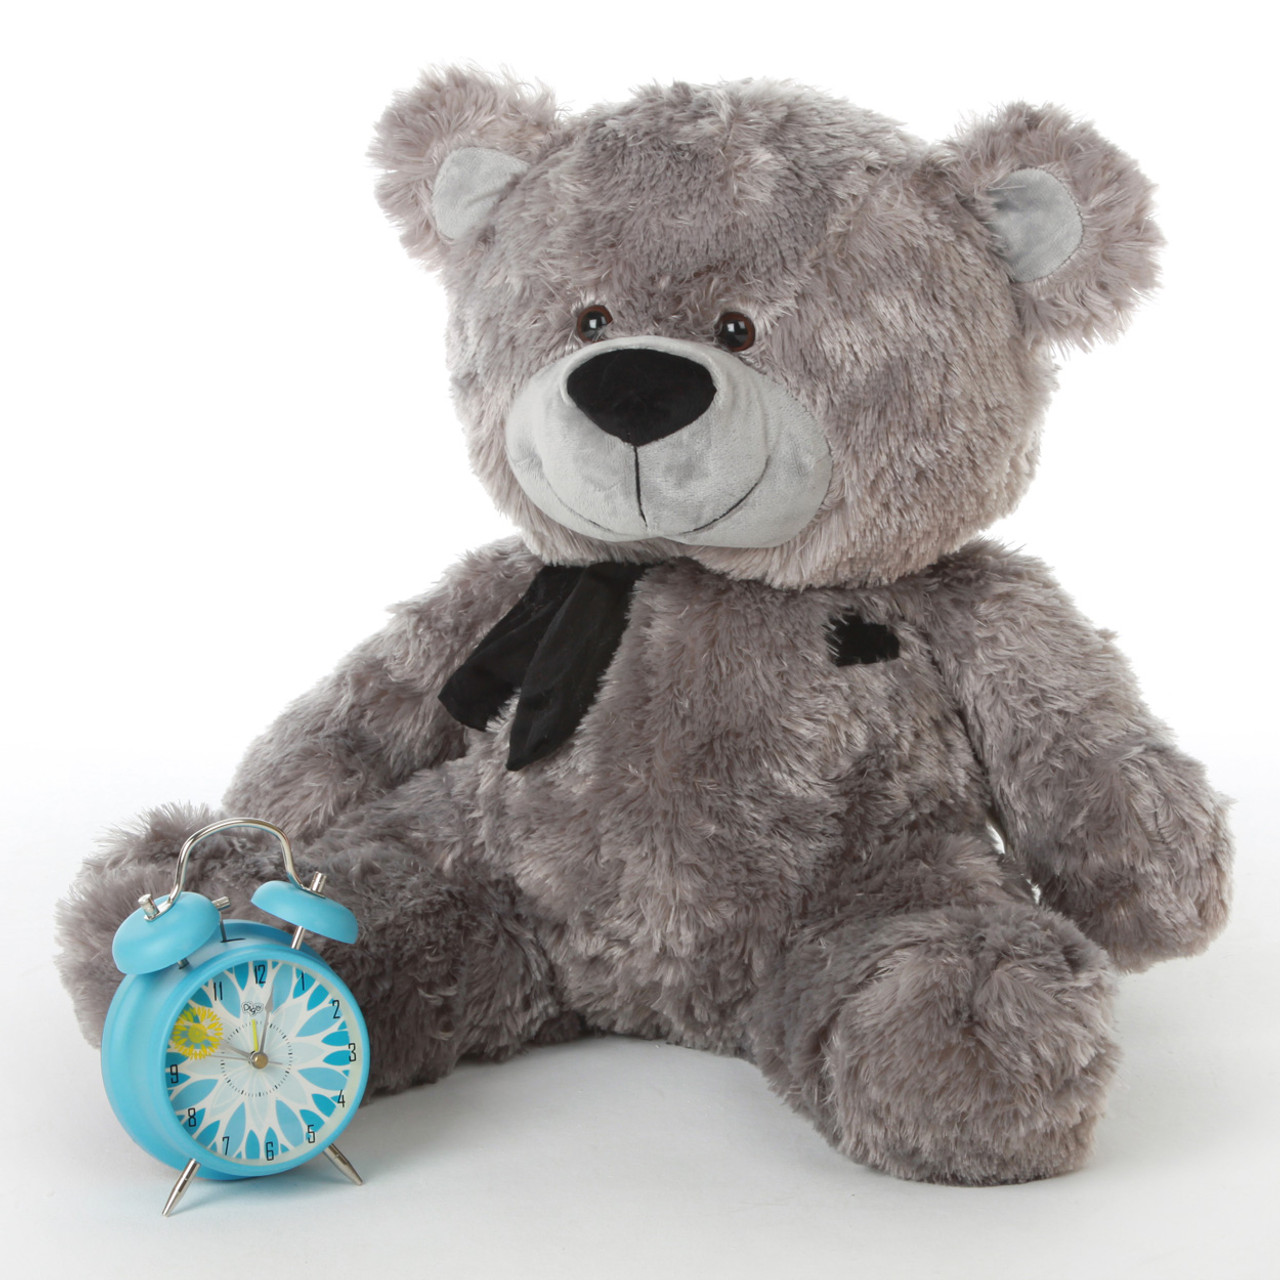 Diamond Shags silver teddy bear 27in